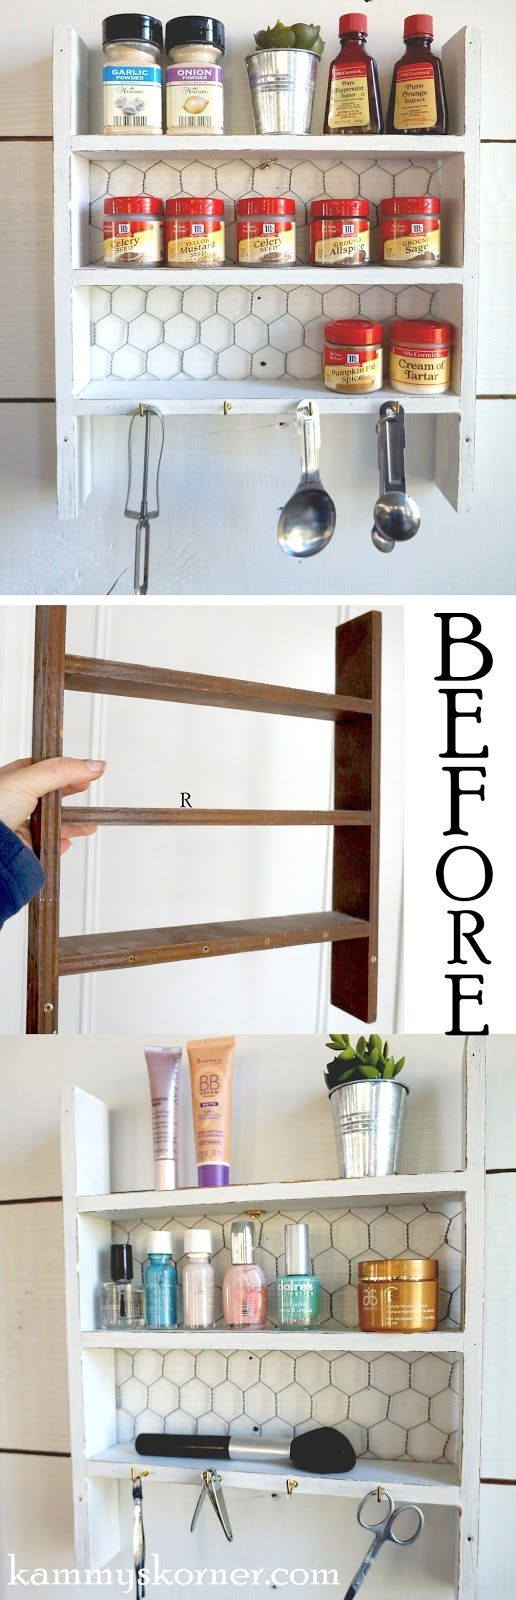 72 best DIY images on Pinterest | Before after, Home ideas and Craft